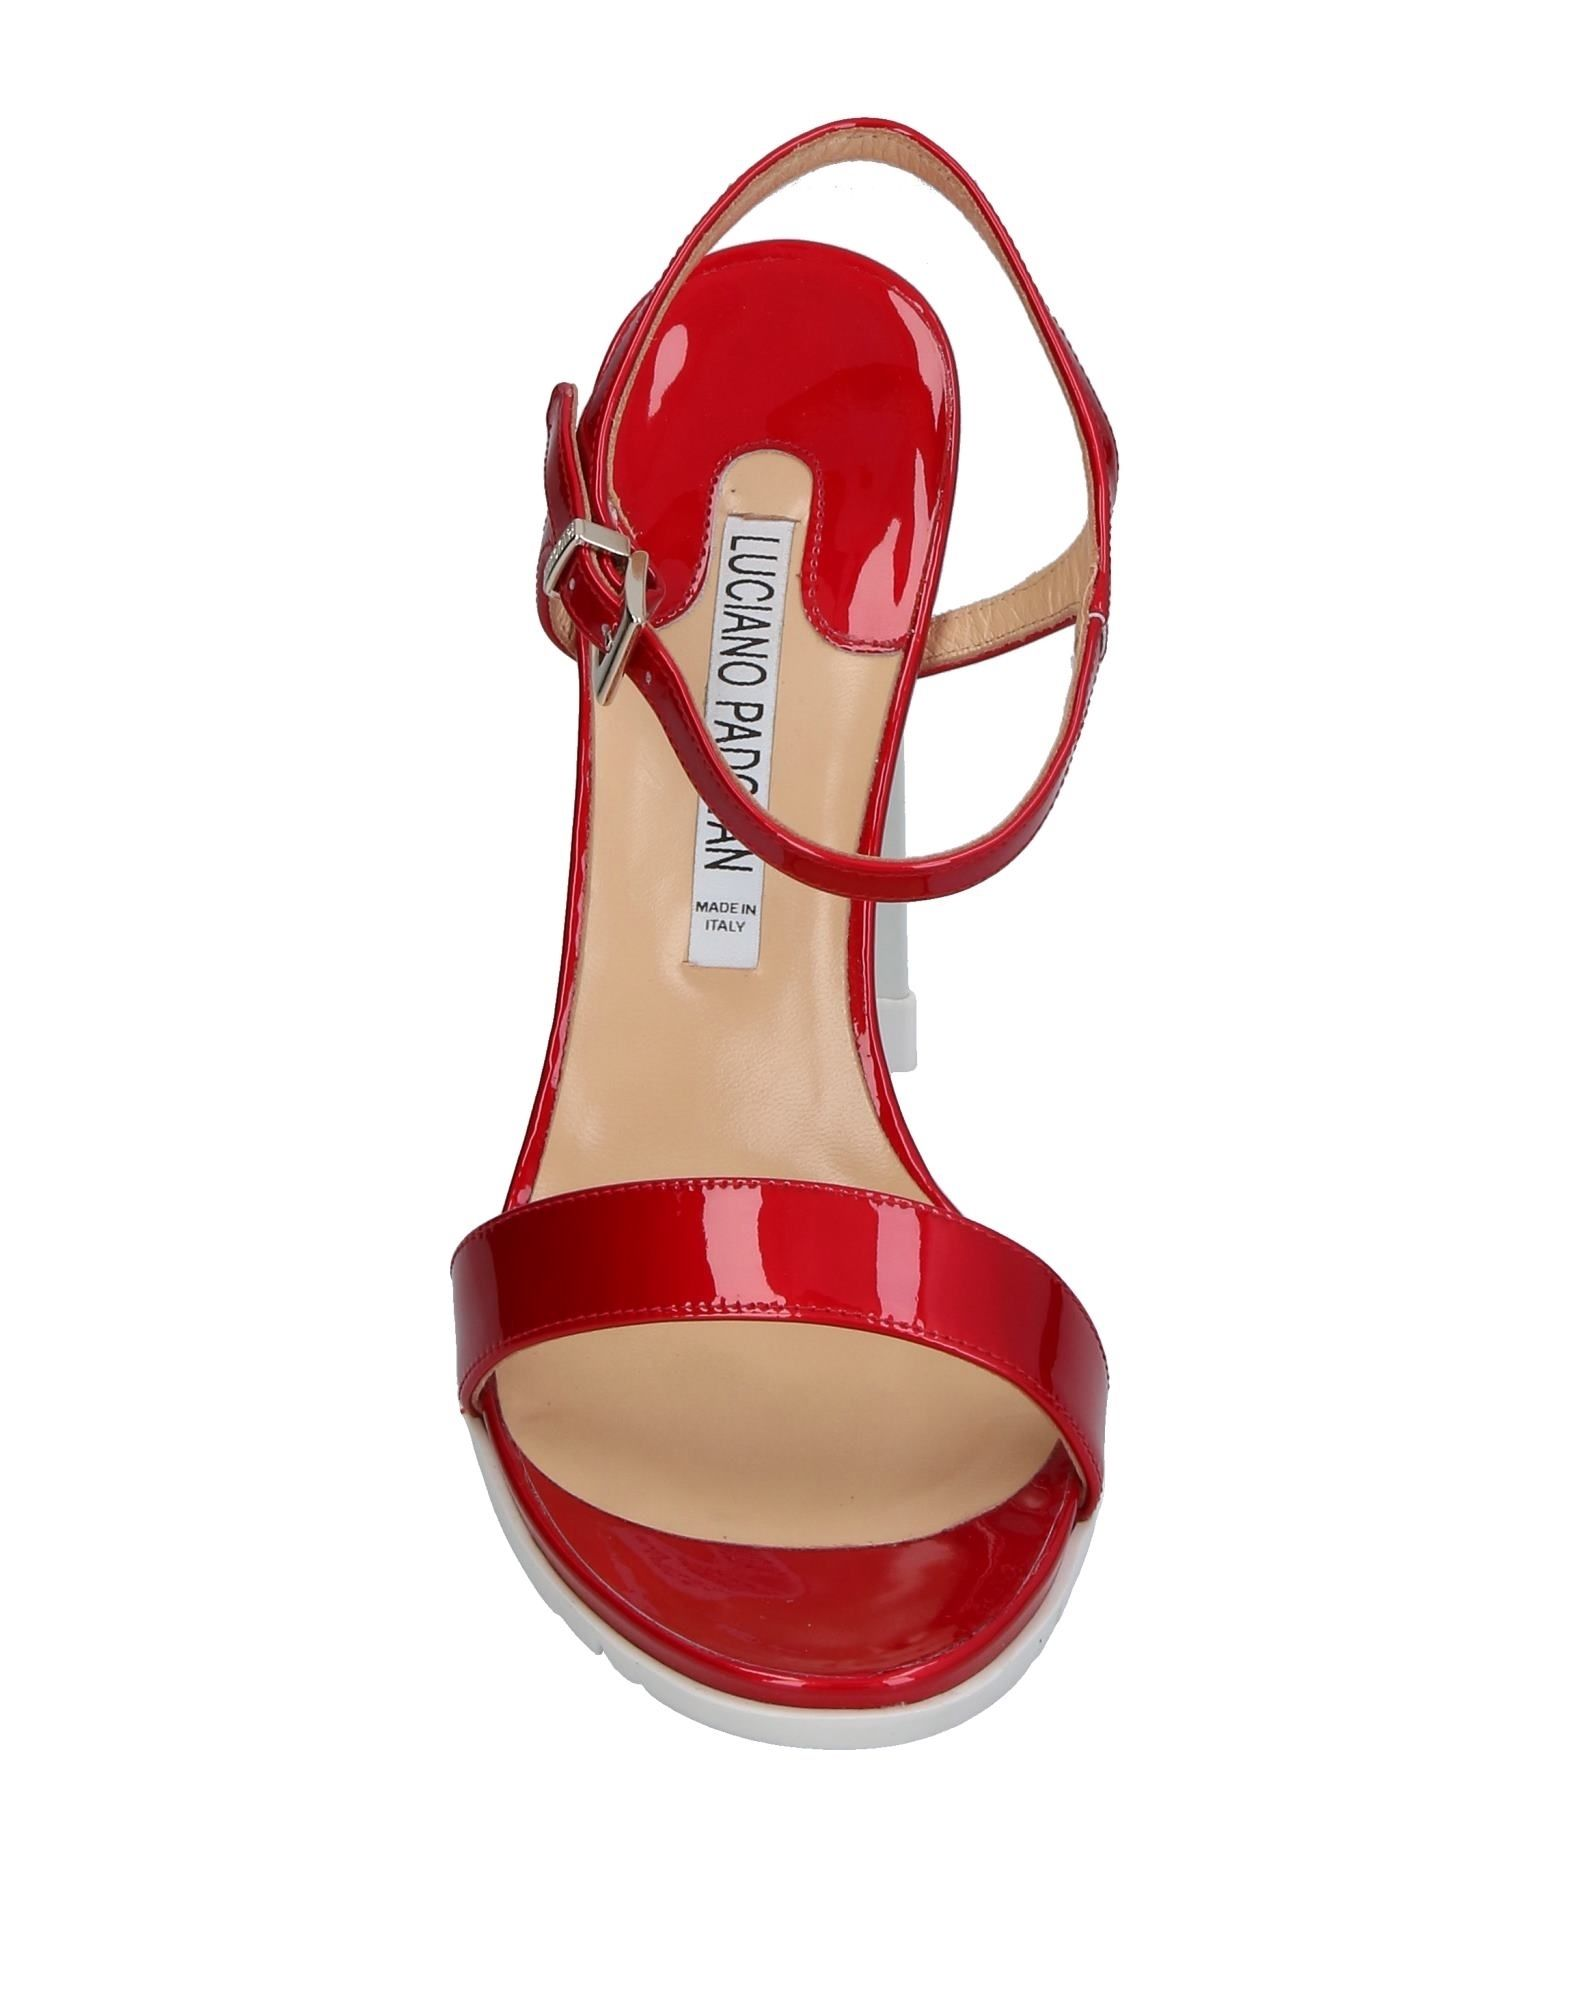 Chaussures - Tribunaux Luciano Padovan 3TBwInr